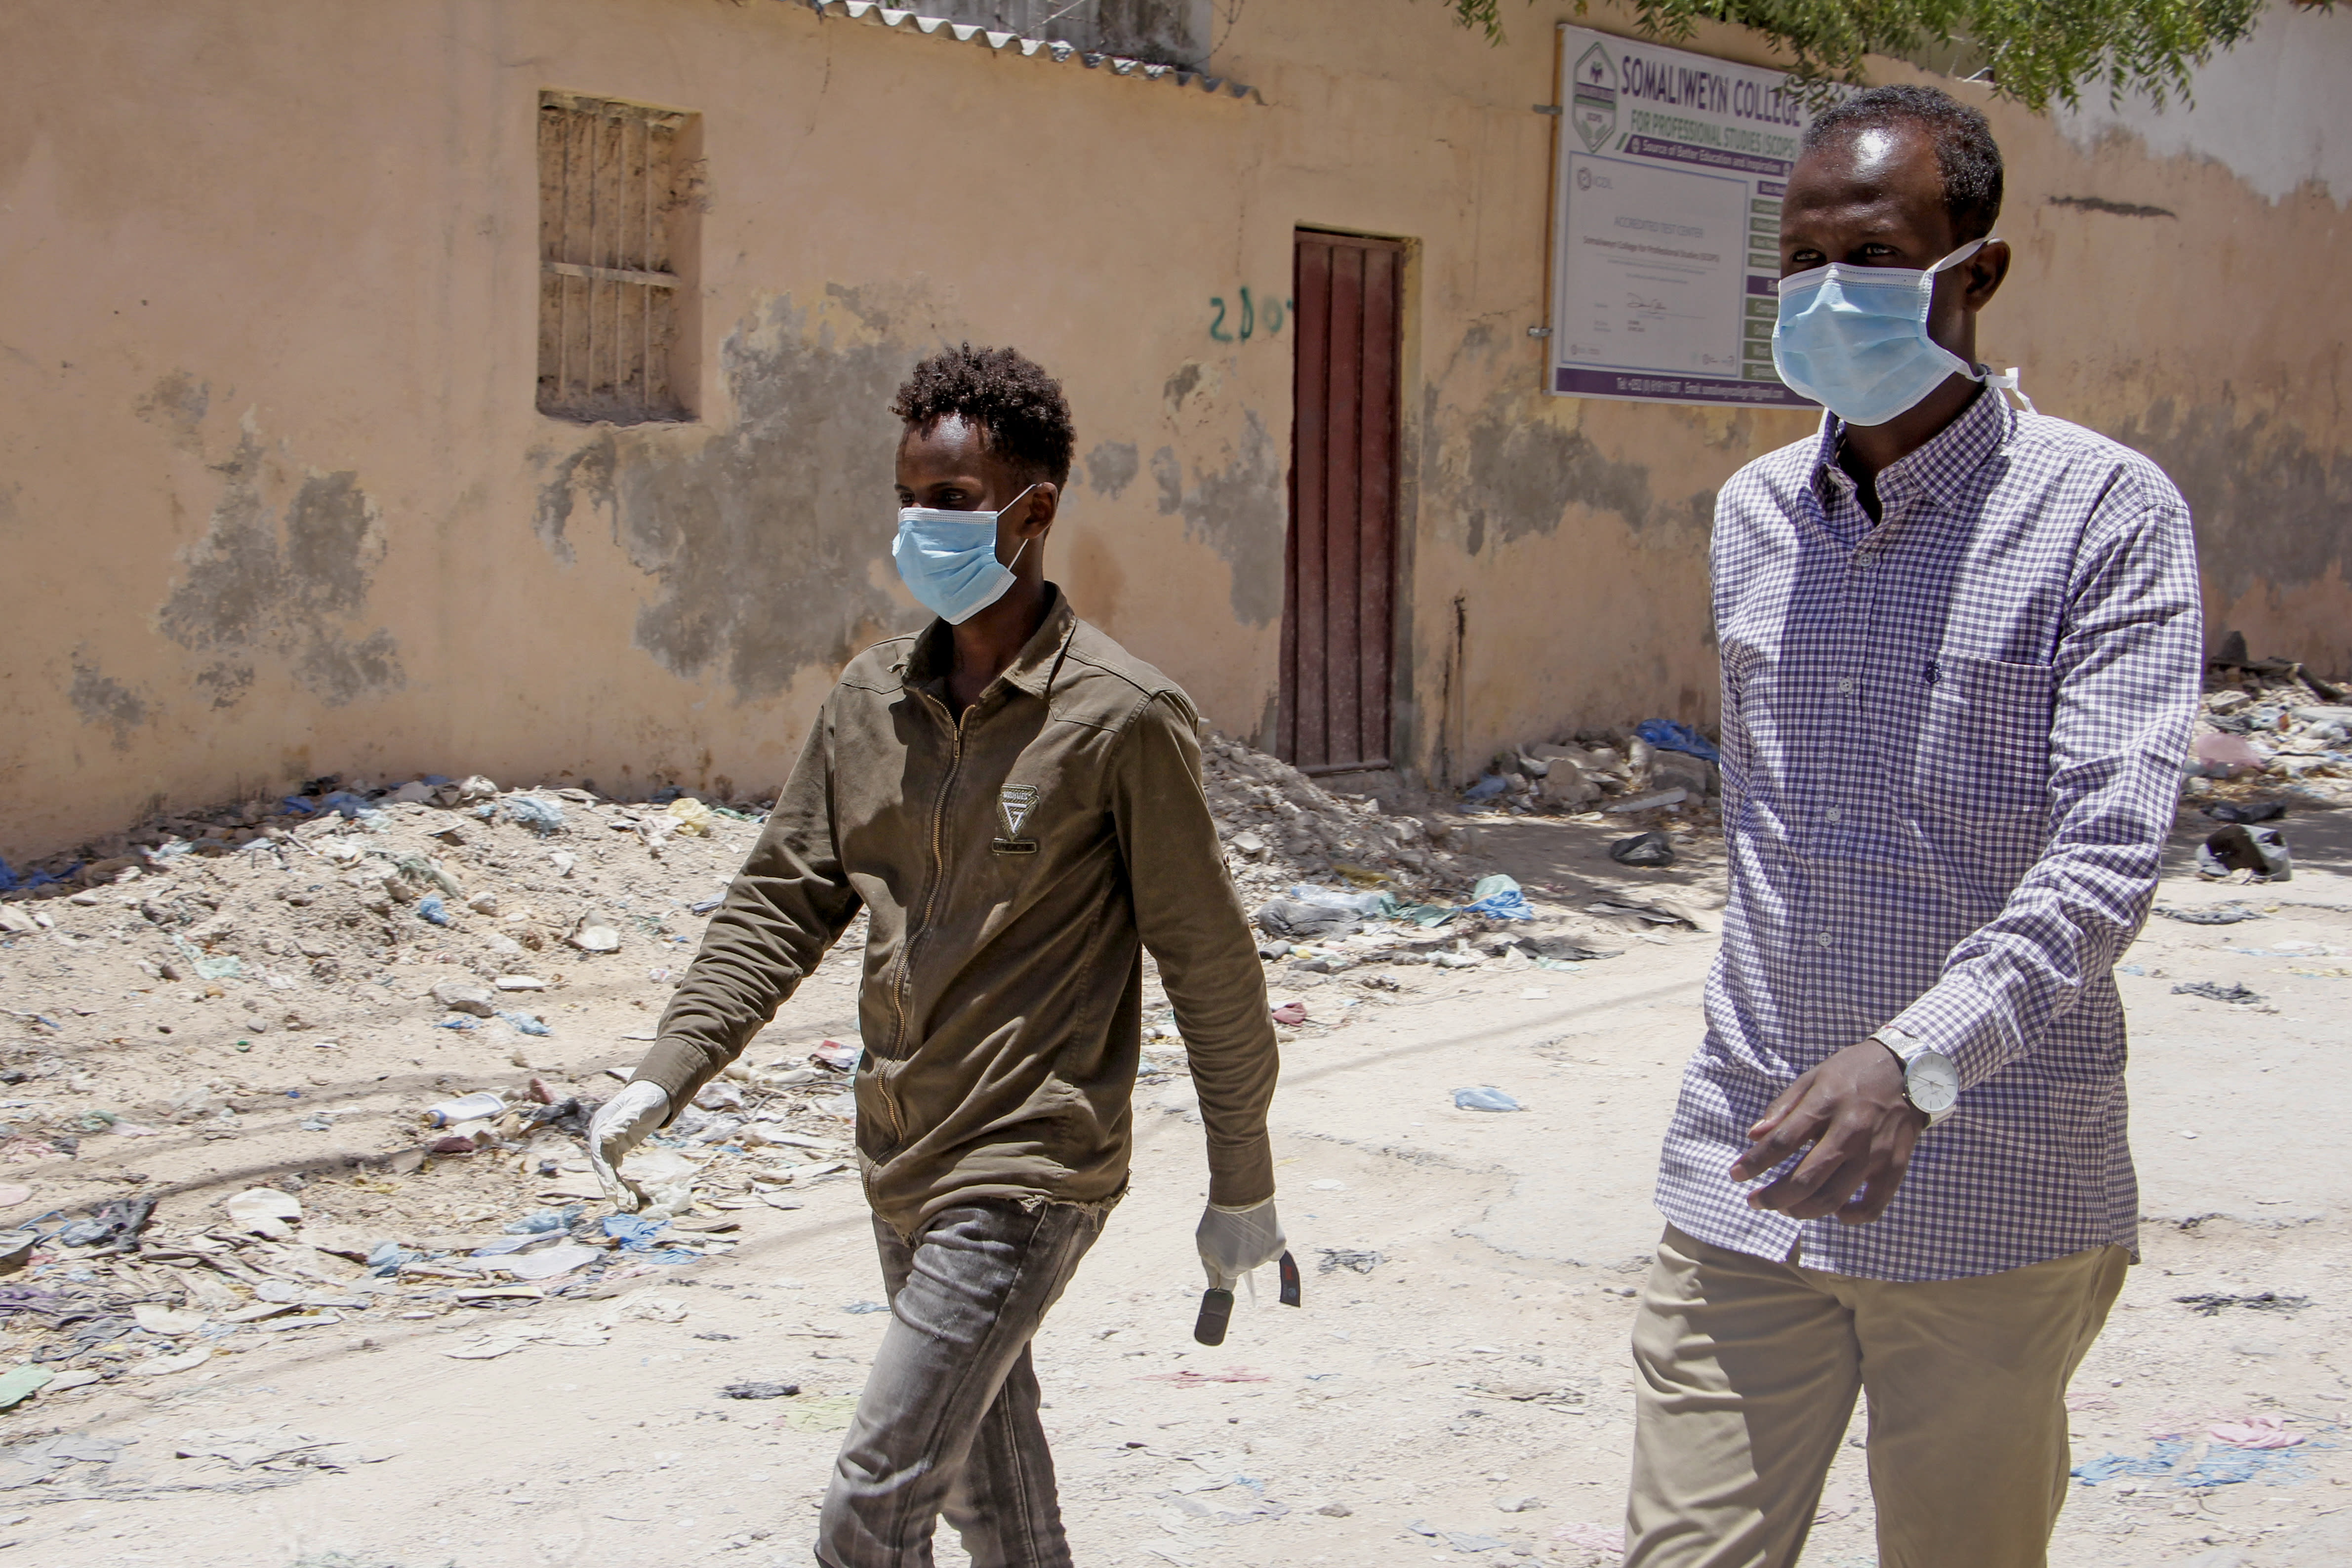 Somali men wear surgical masks on the street after after the government announced the closure of schools and universities and banned large gatherings, following the announcement on Monday of the country's first case of the new coronavirus, in the capital Mogadishu, Somalia Wednesday, March 18, 2020. For most people, the new coronavirus causes only mild or moderate symptoms such as fever and cough and the vast majority recover in 2-6 weeks but for some, especially older adults and people with existing health issues, the virus that causes COVID-19 can result in more severe illness, including pneumonia. (AP Photo/Farah Abdi Warsameh)